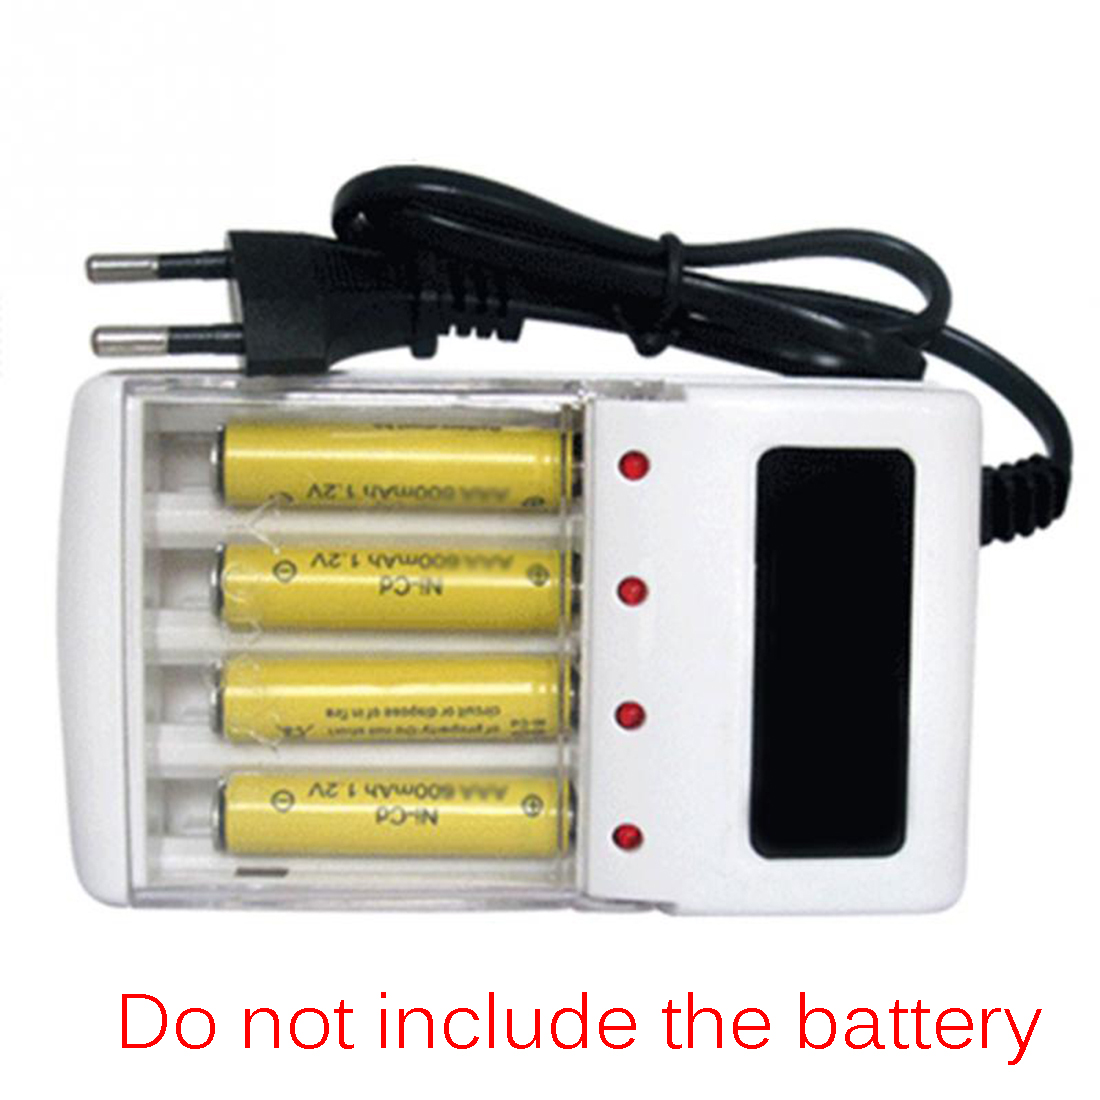 Marsnaska 1Pcs Universal Charger Aa And Aaa Rechargeable 4Ports Battery Charger Smart Travel Charger With Eu